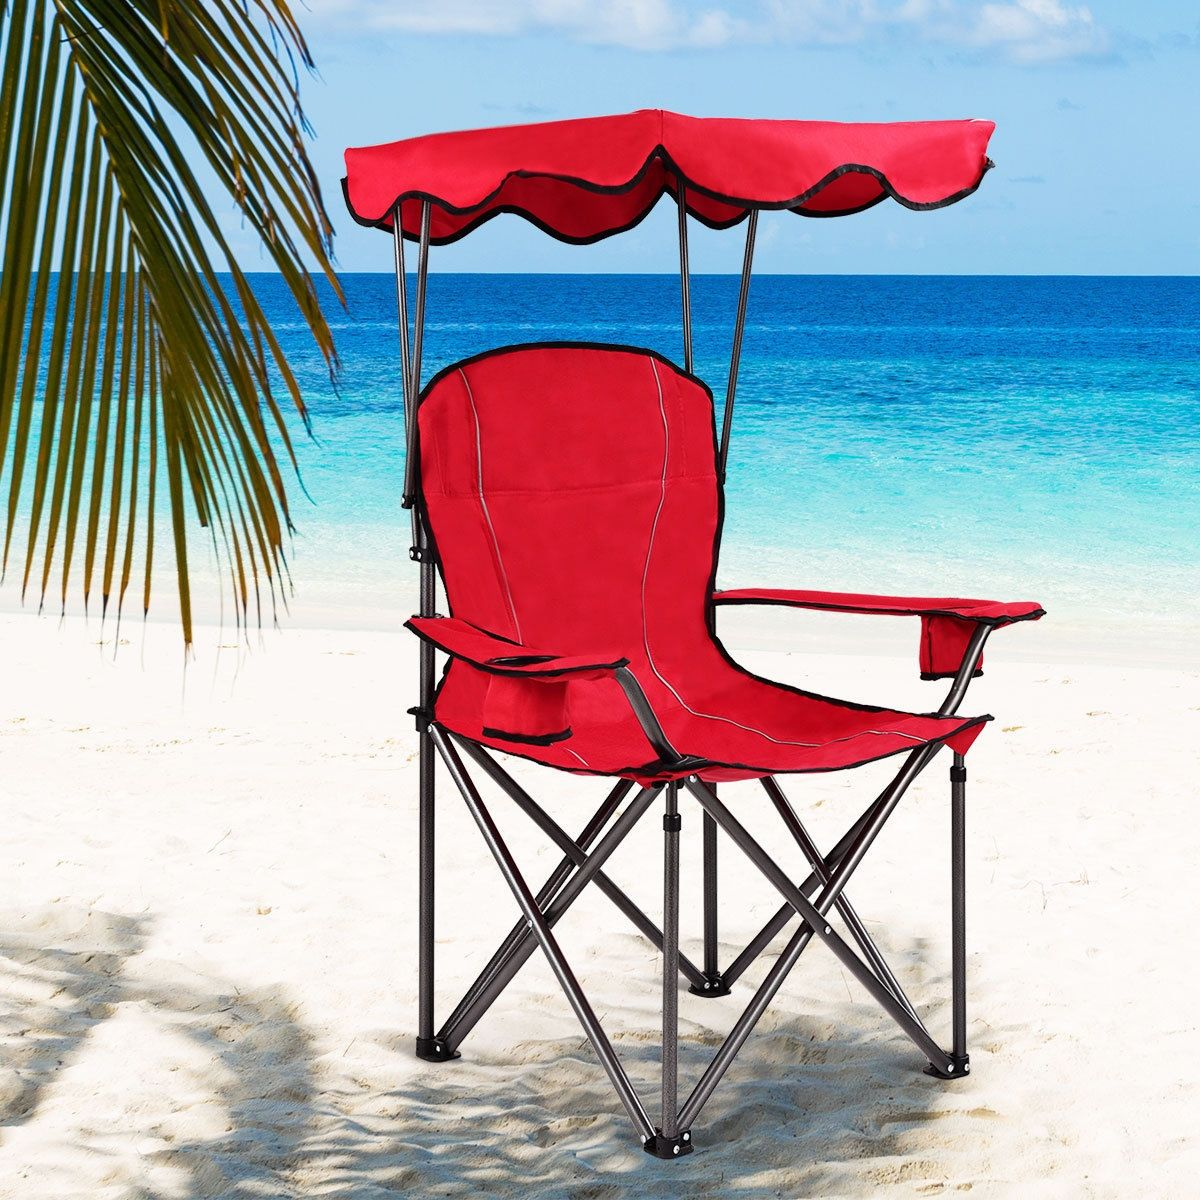 Portable Folding Beach Canopy Chair with Cup Holders in